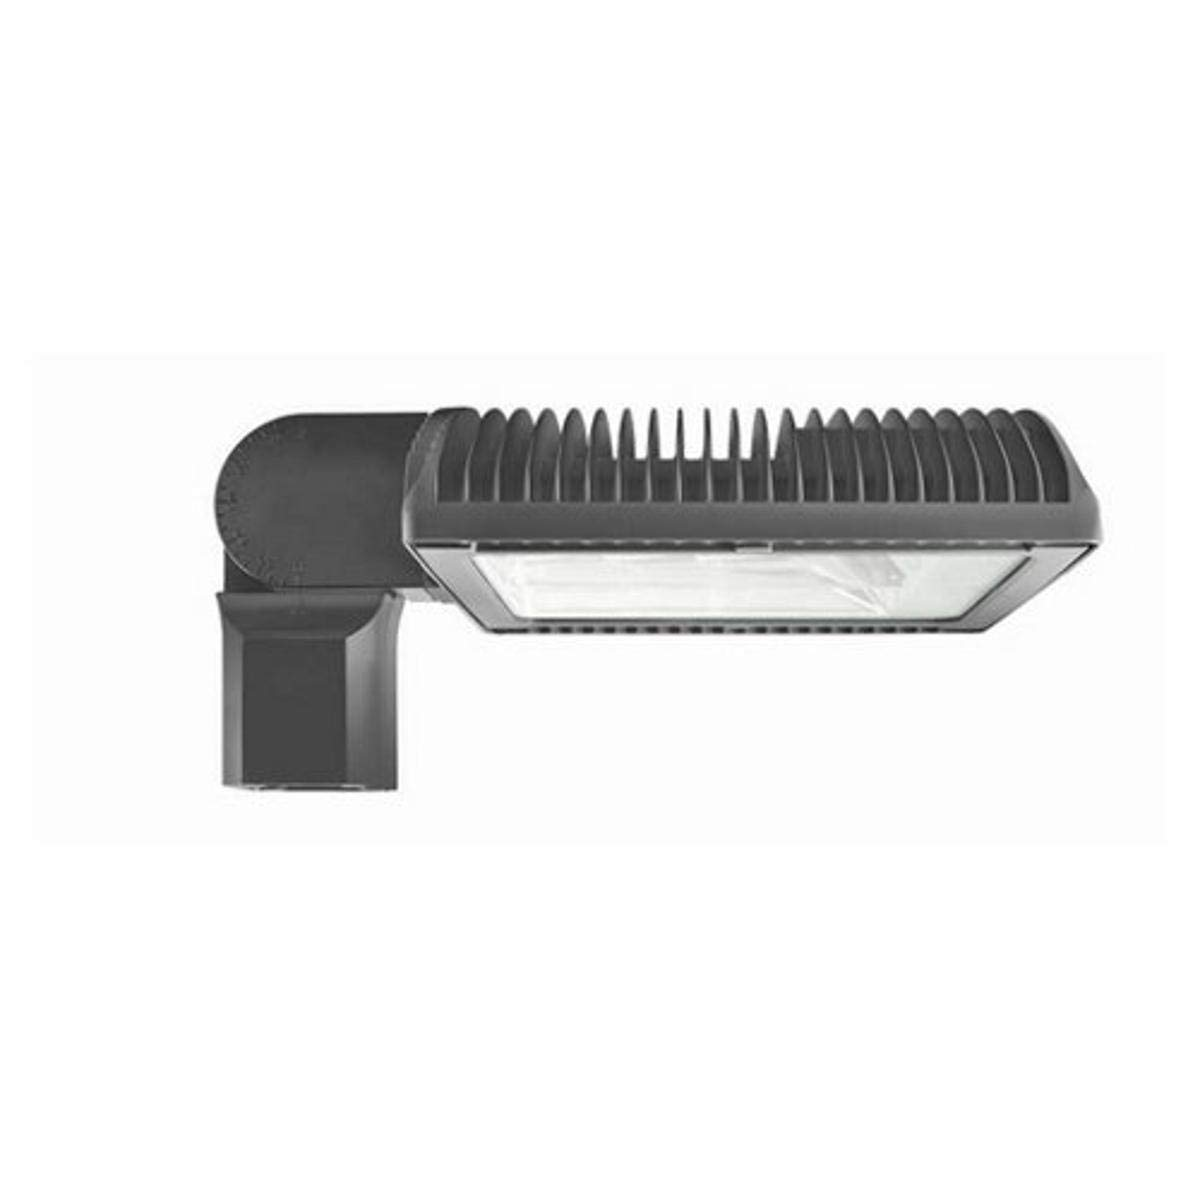 RAB Lighting ALED2T105SFN/480 LED High Wattage Type II Area Light, Standard Type, 4000 K (Neutral) Color Temperature, Bronze Finish